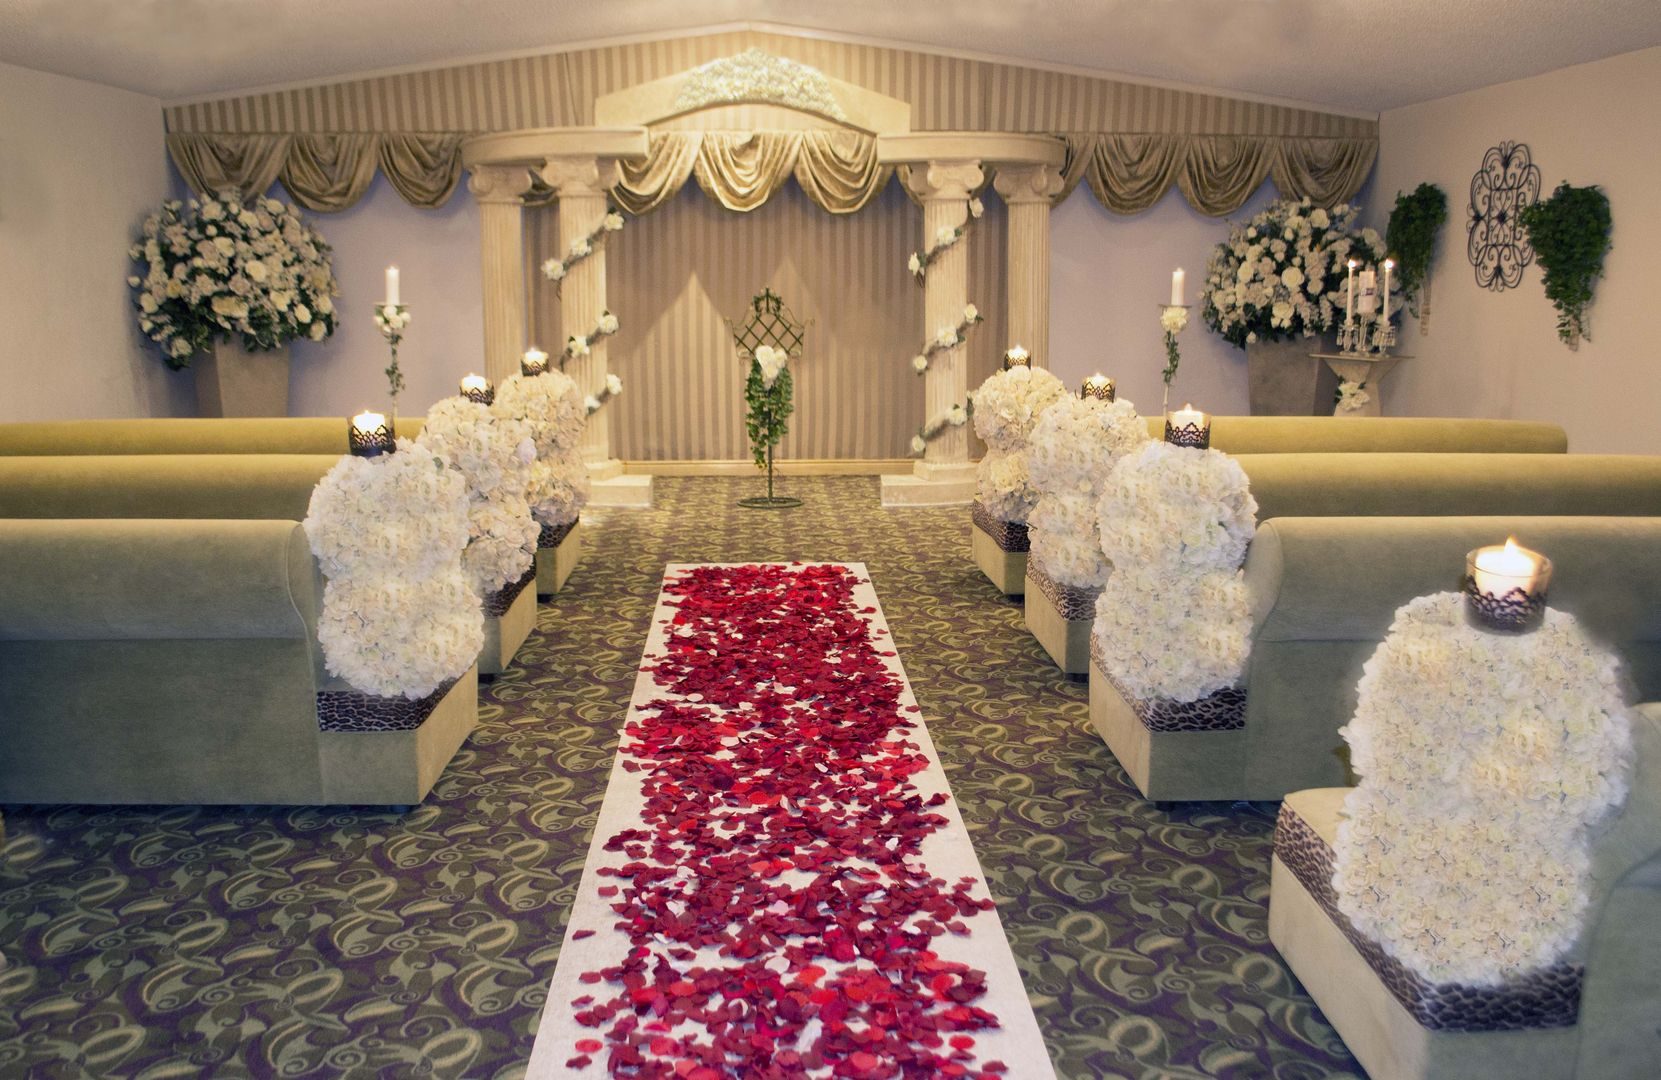 Belleza Wedding Chapel Las Vegas Is One Of The Most Chapels In Valley Offers Affordable